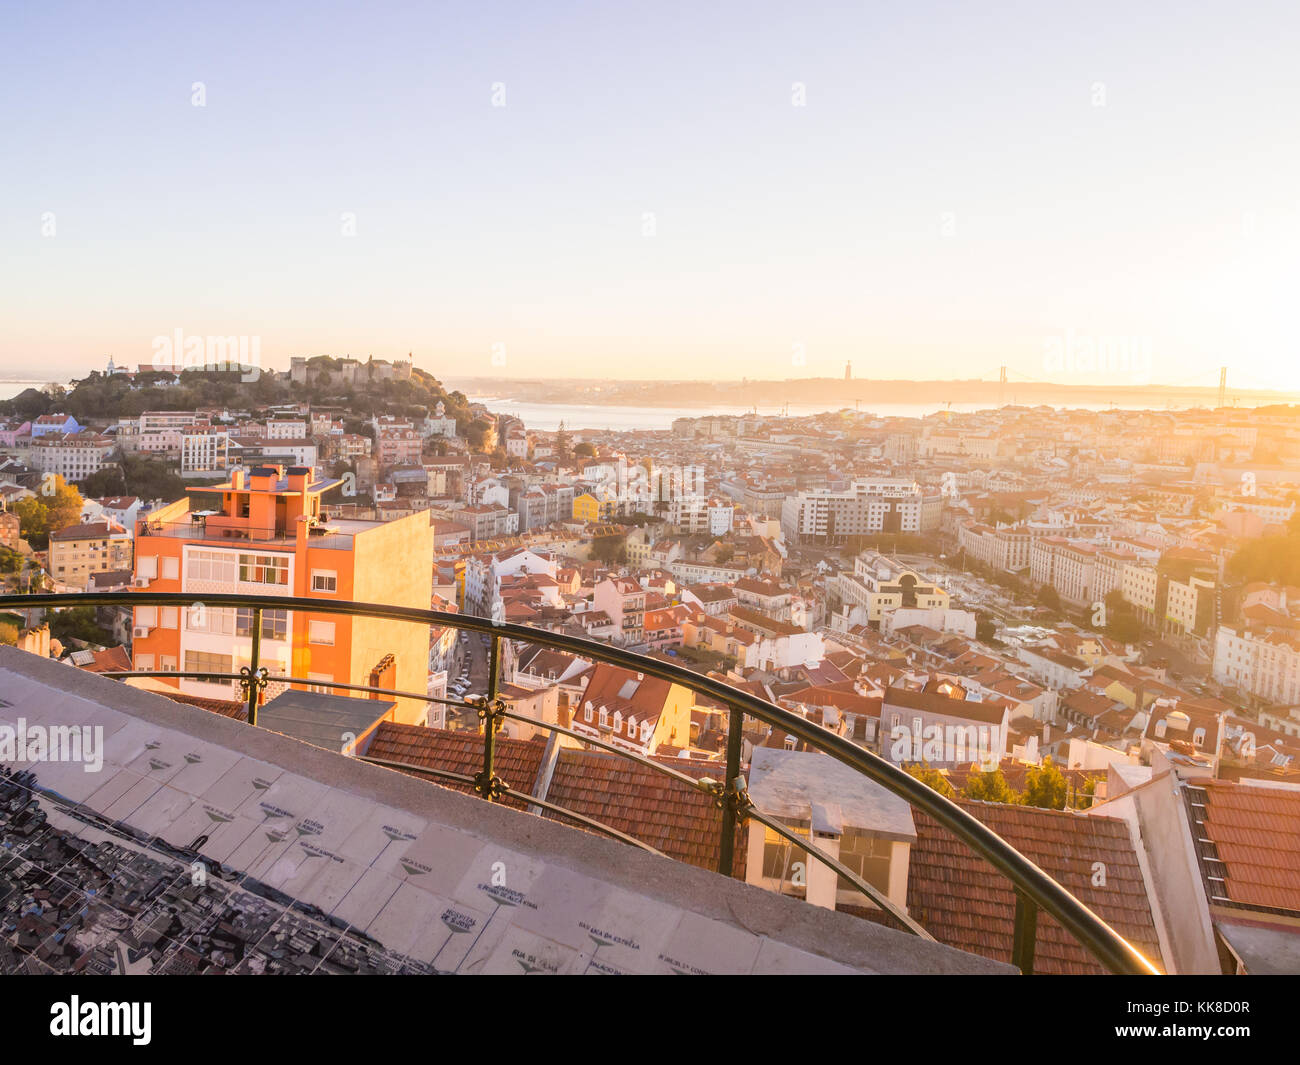 LISBON, PORTUGAL - NOVEMBER 19, 2017: Cityscape of Lisbon, Portugal, at sunset on a November day, as seen from Belvedere - Stock Image